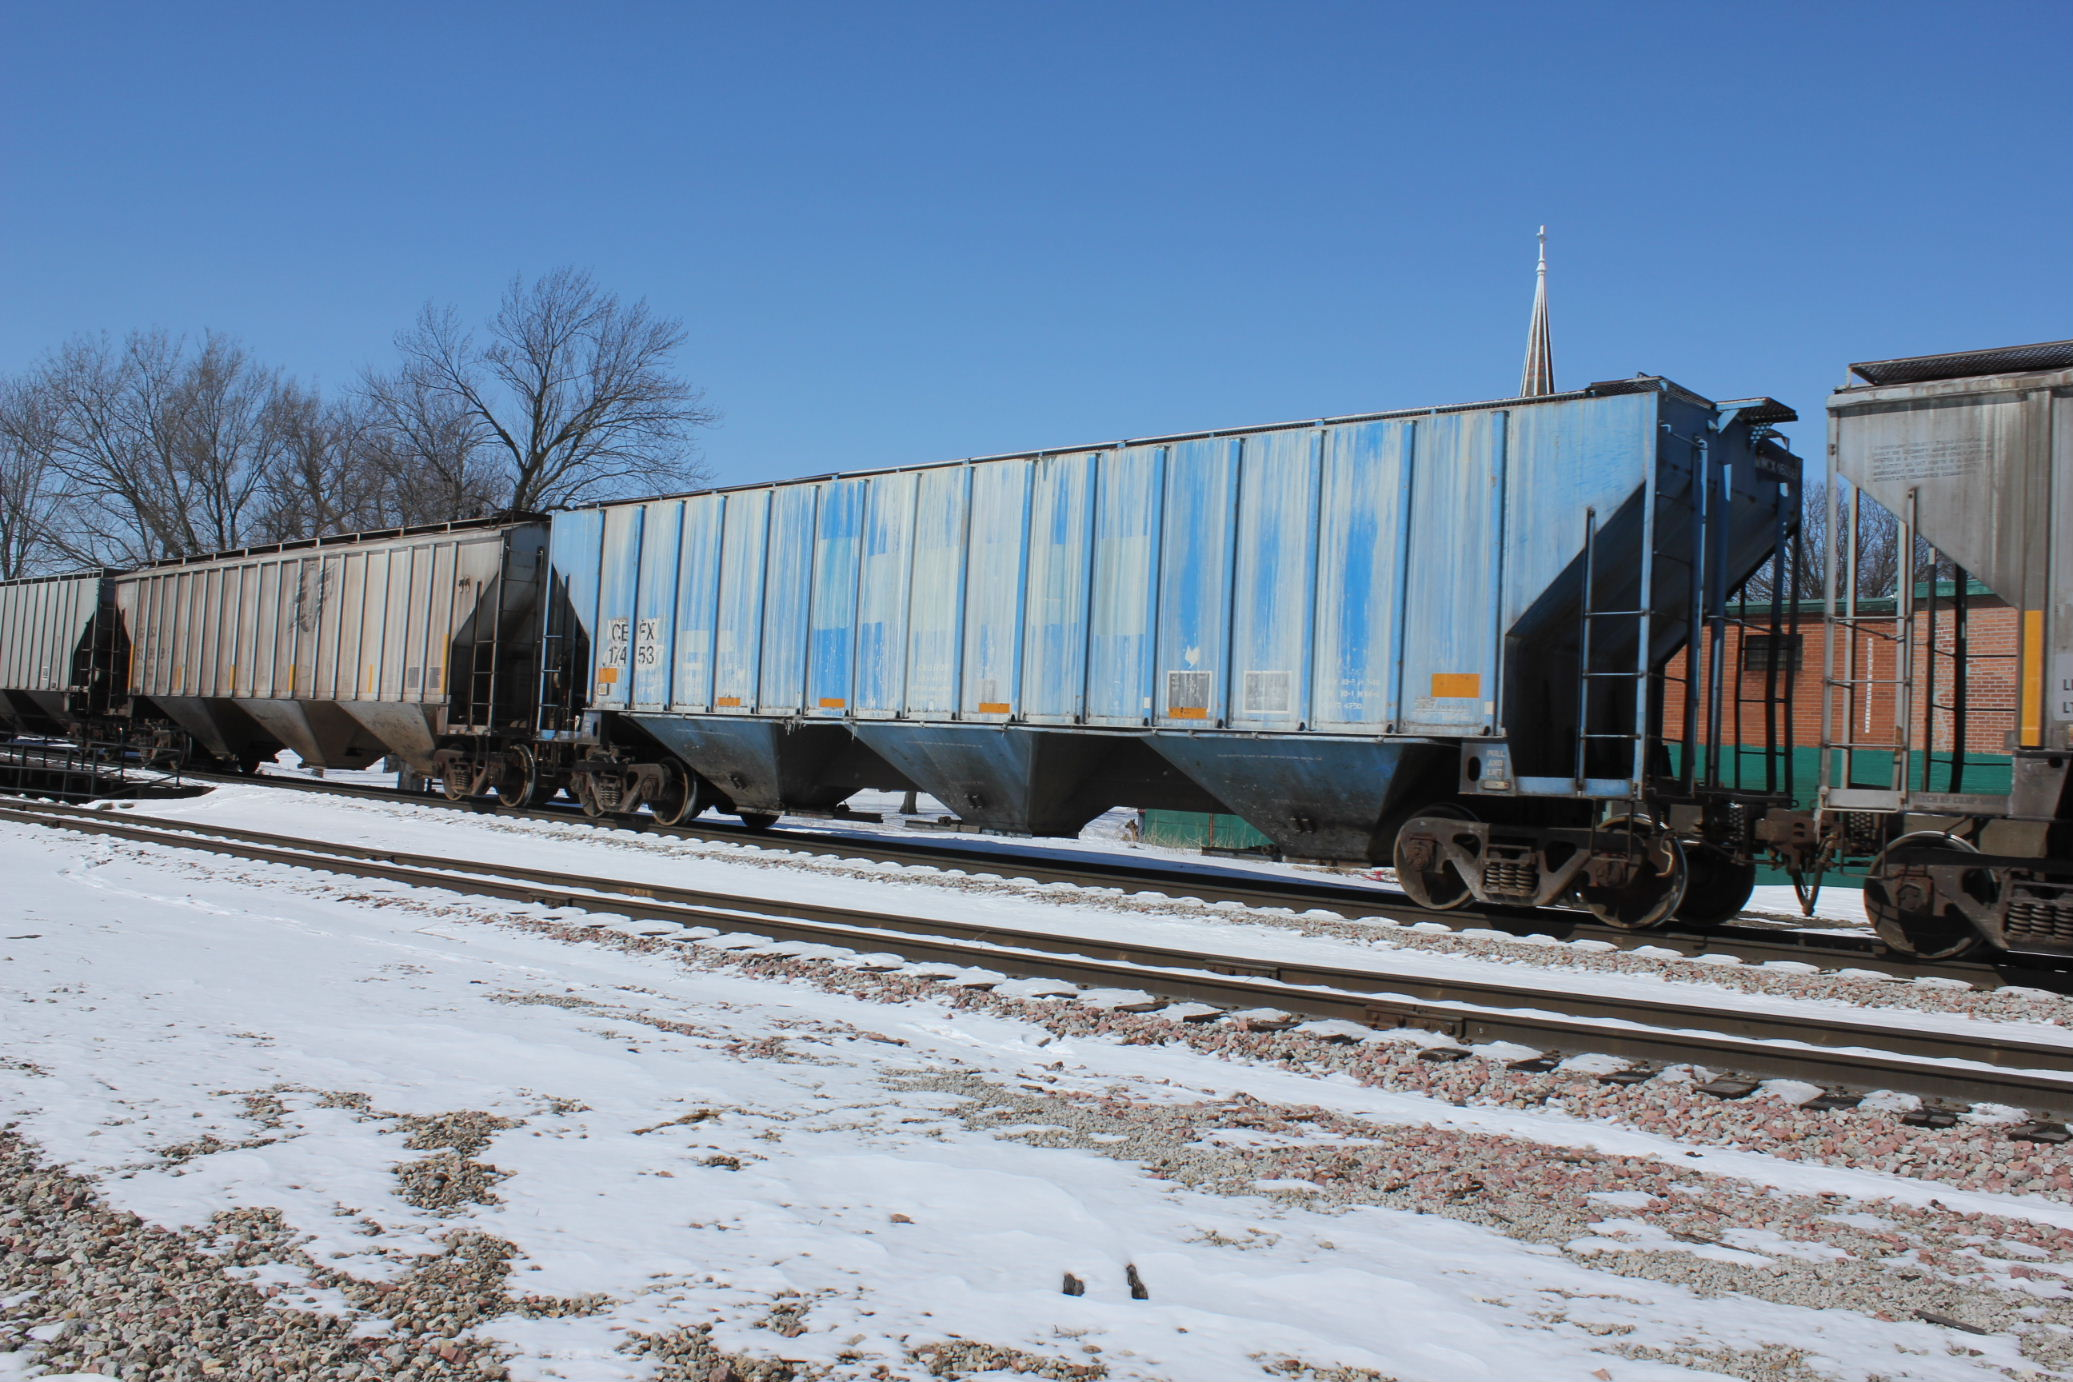 There were several interesting hoppers on this train, fertilizer cars from Hills I think.